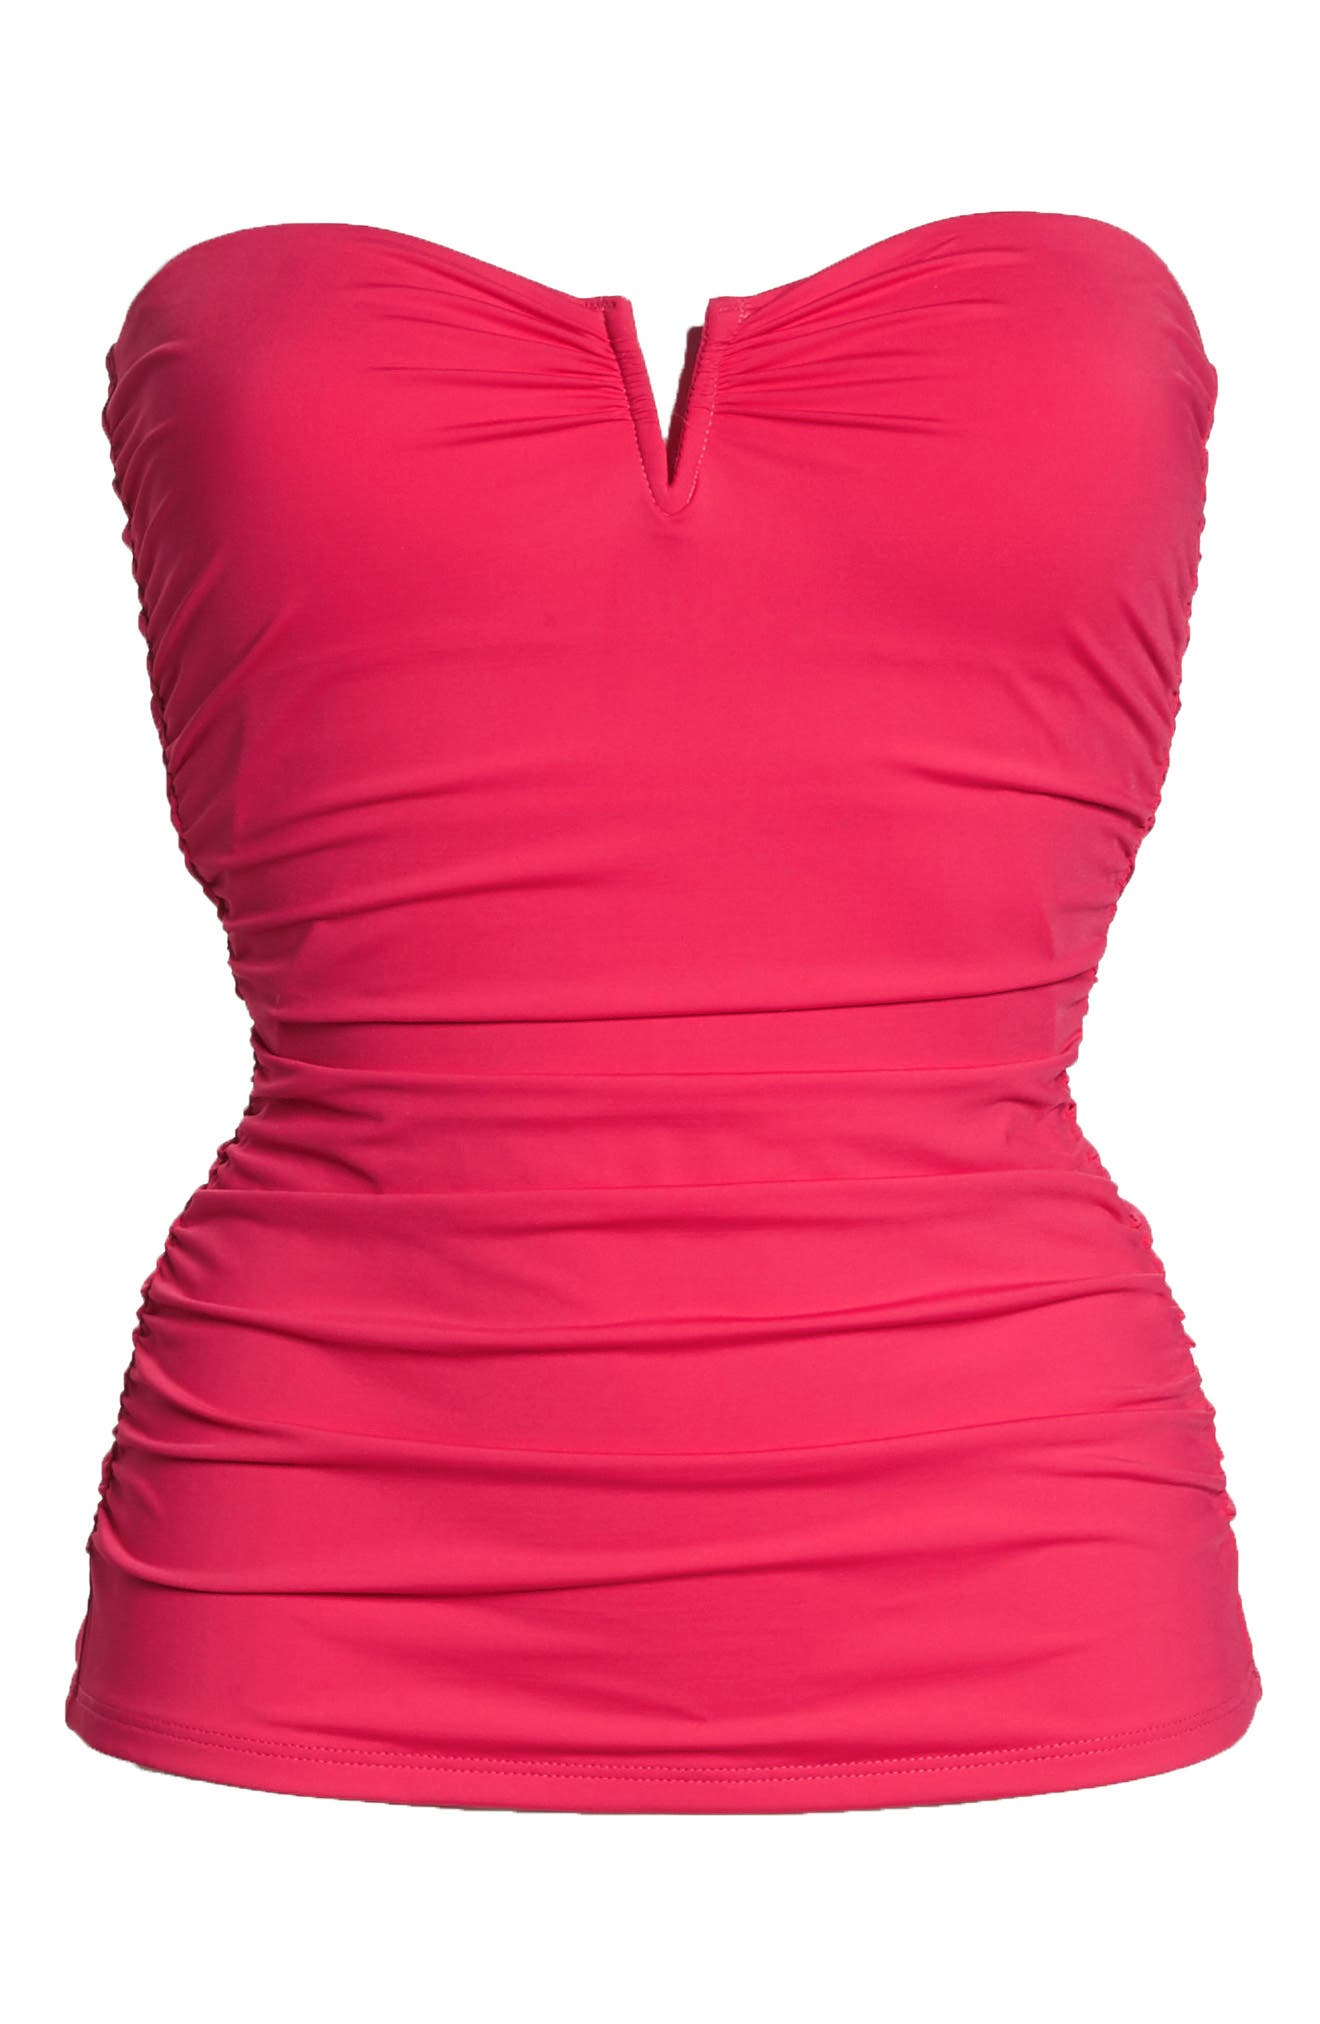 Pearl Convertible Tankini Top,                             Alternate thumbnail 5, color,                             CERISE